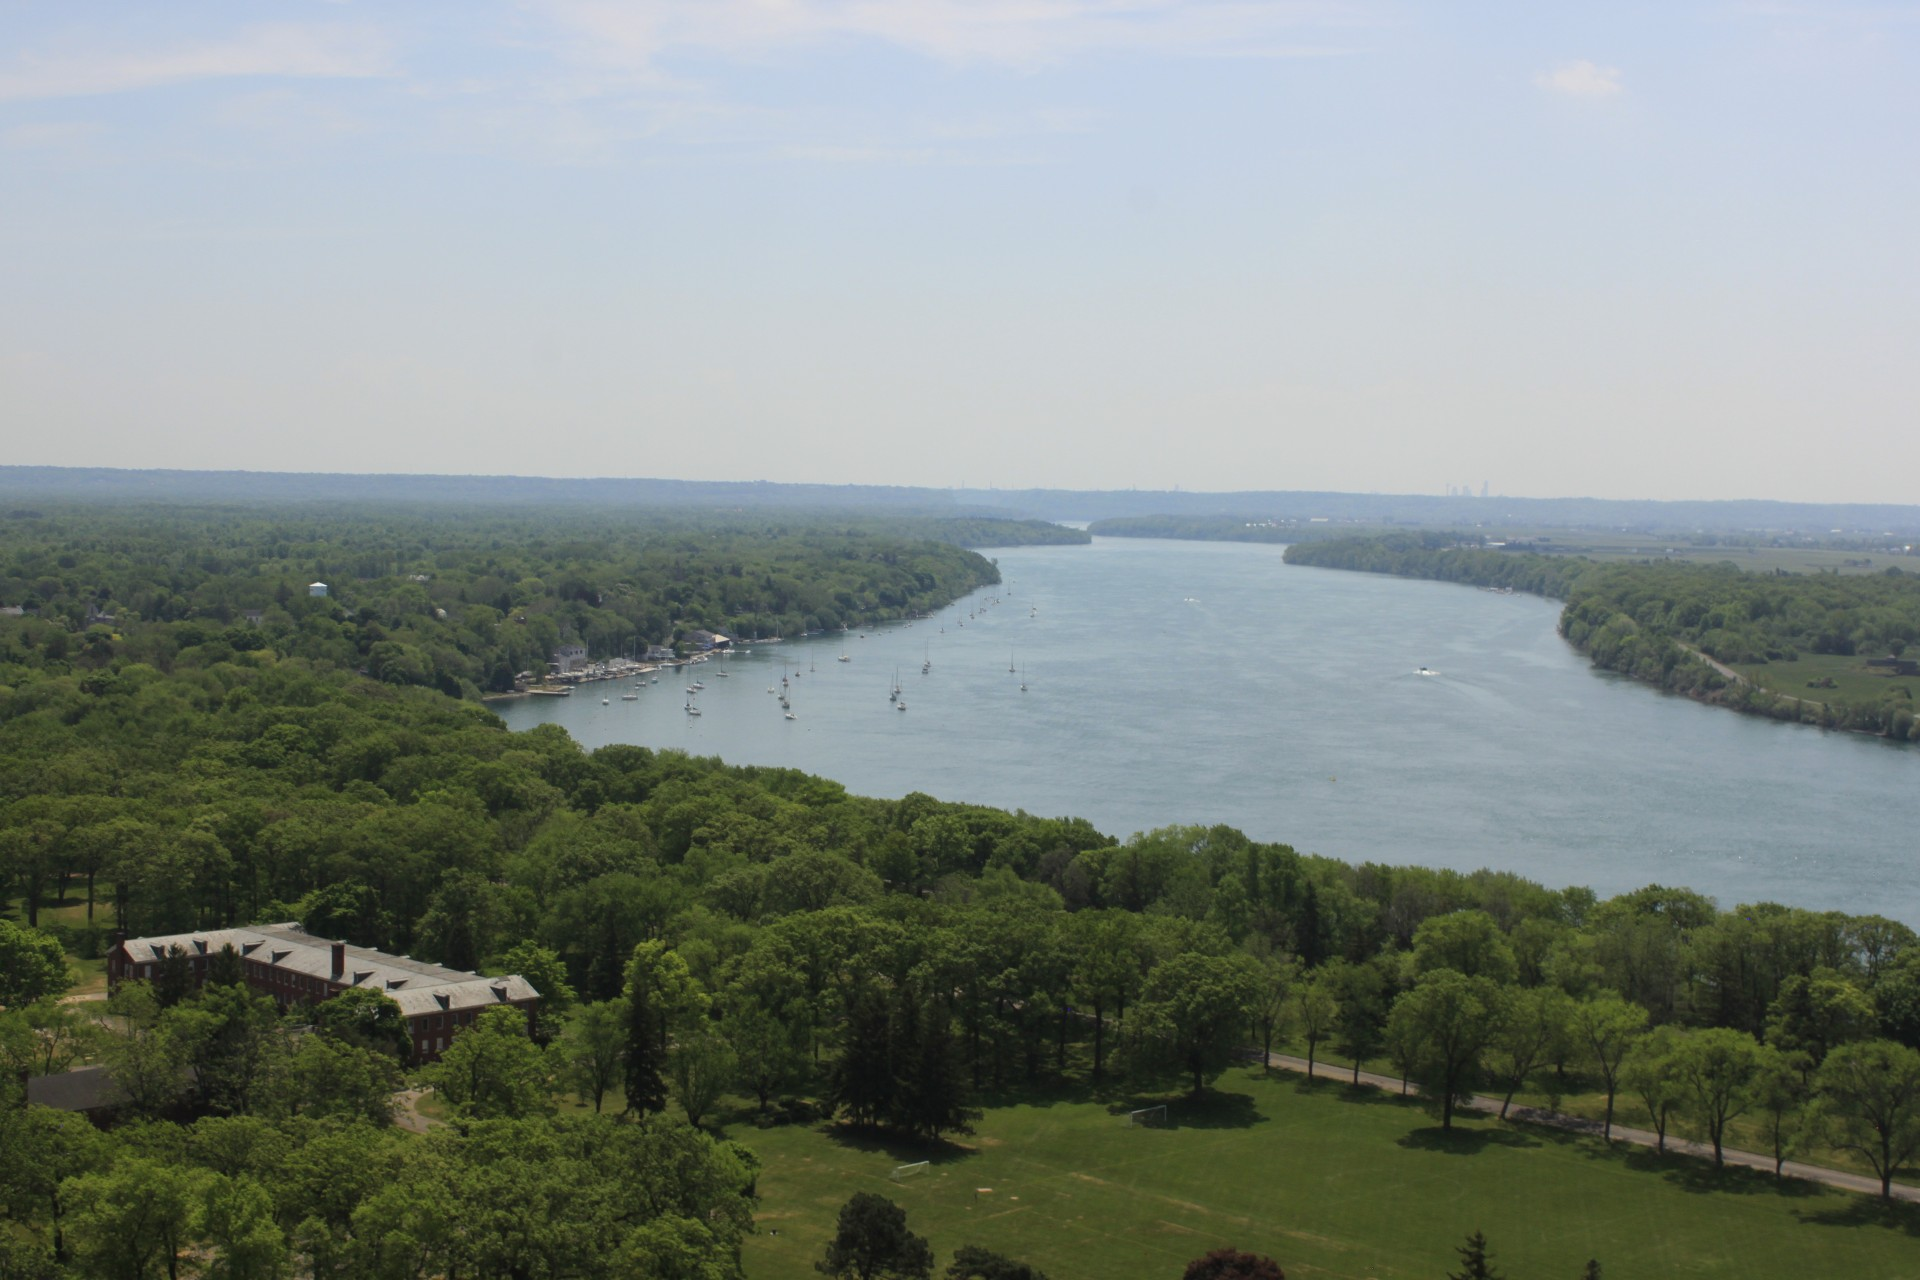 aerial photo showing fort buildings and lake with sailboats